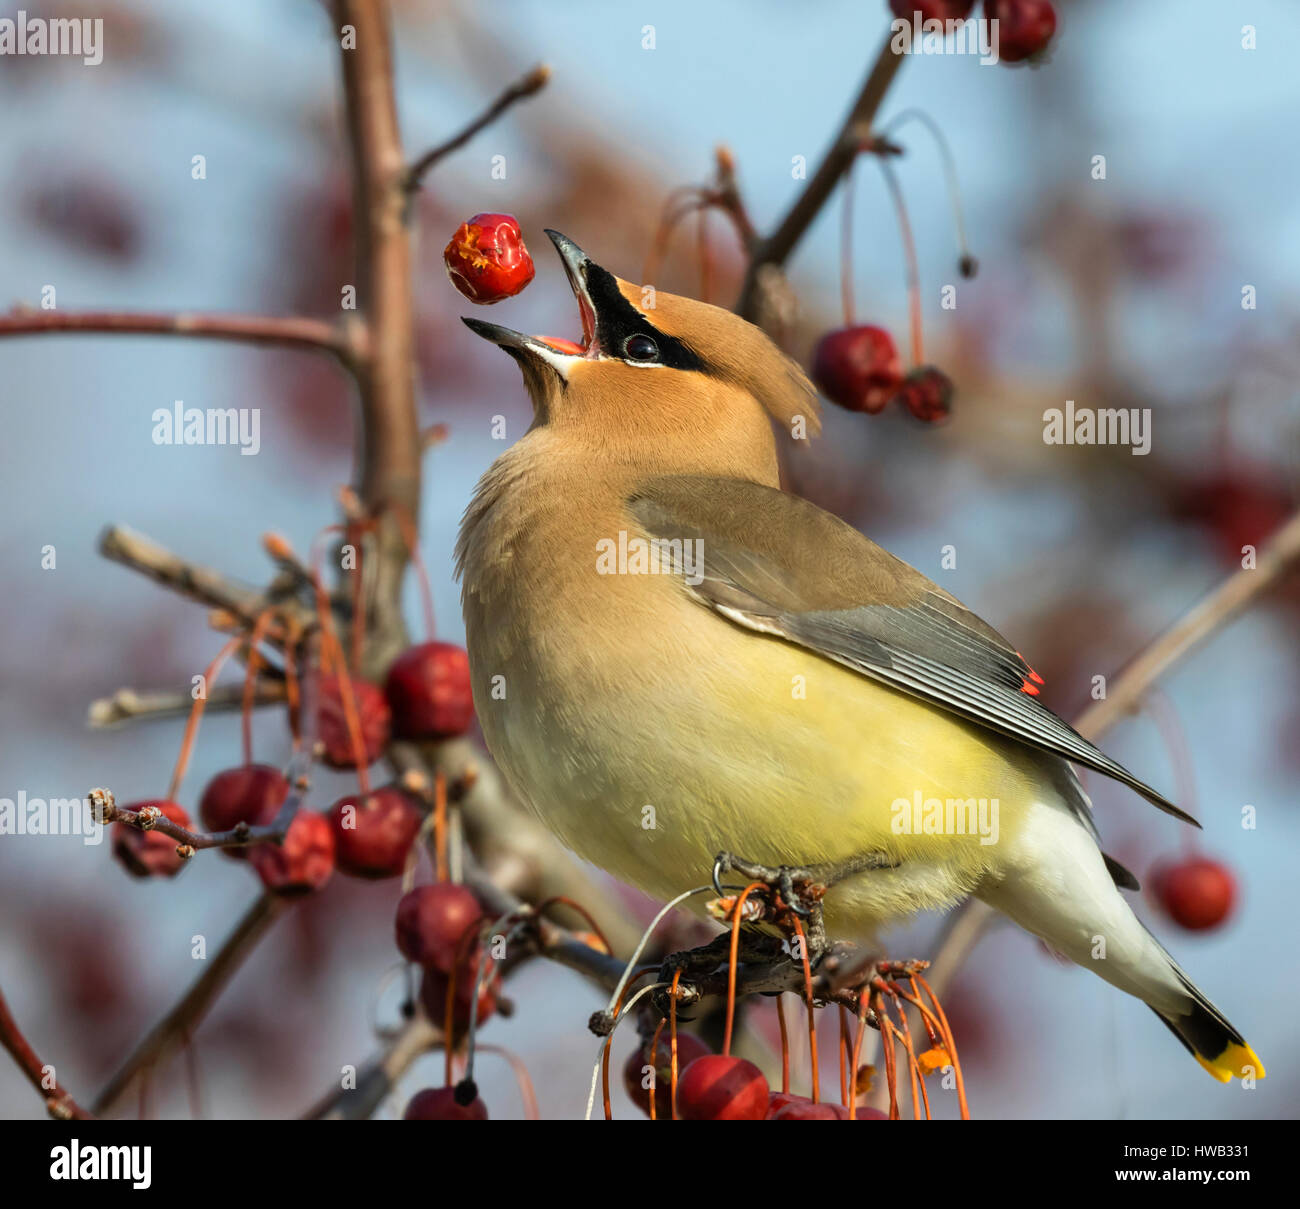 Cedar waxwing (Bombycilla cedrorum) feeding on crabapples, Ames, Iowa, USA. Stock Photo